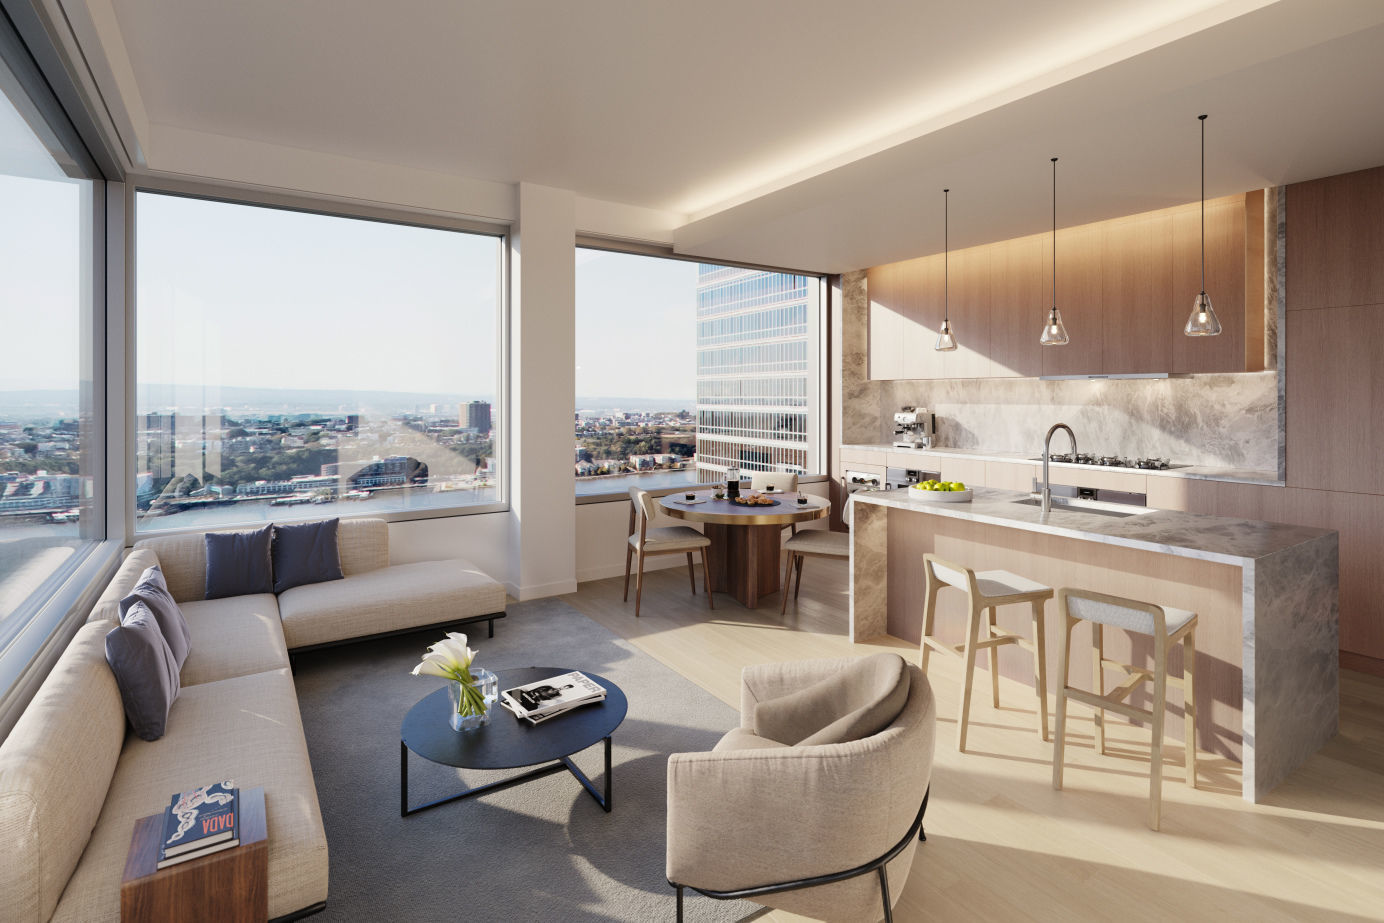 Apartment for sale at 611 West 56th Street, Apt 17-B